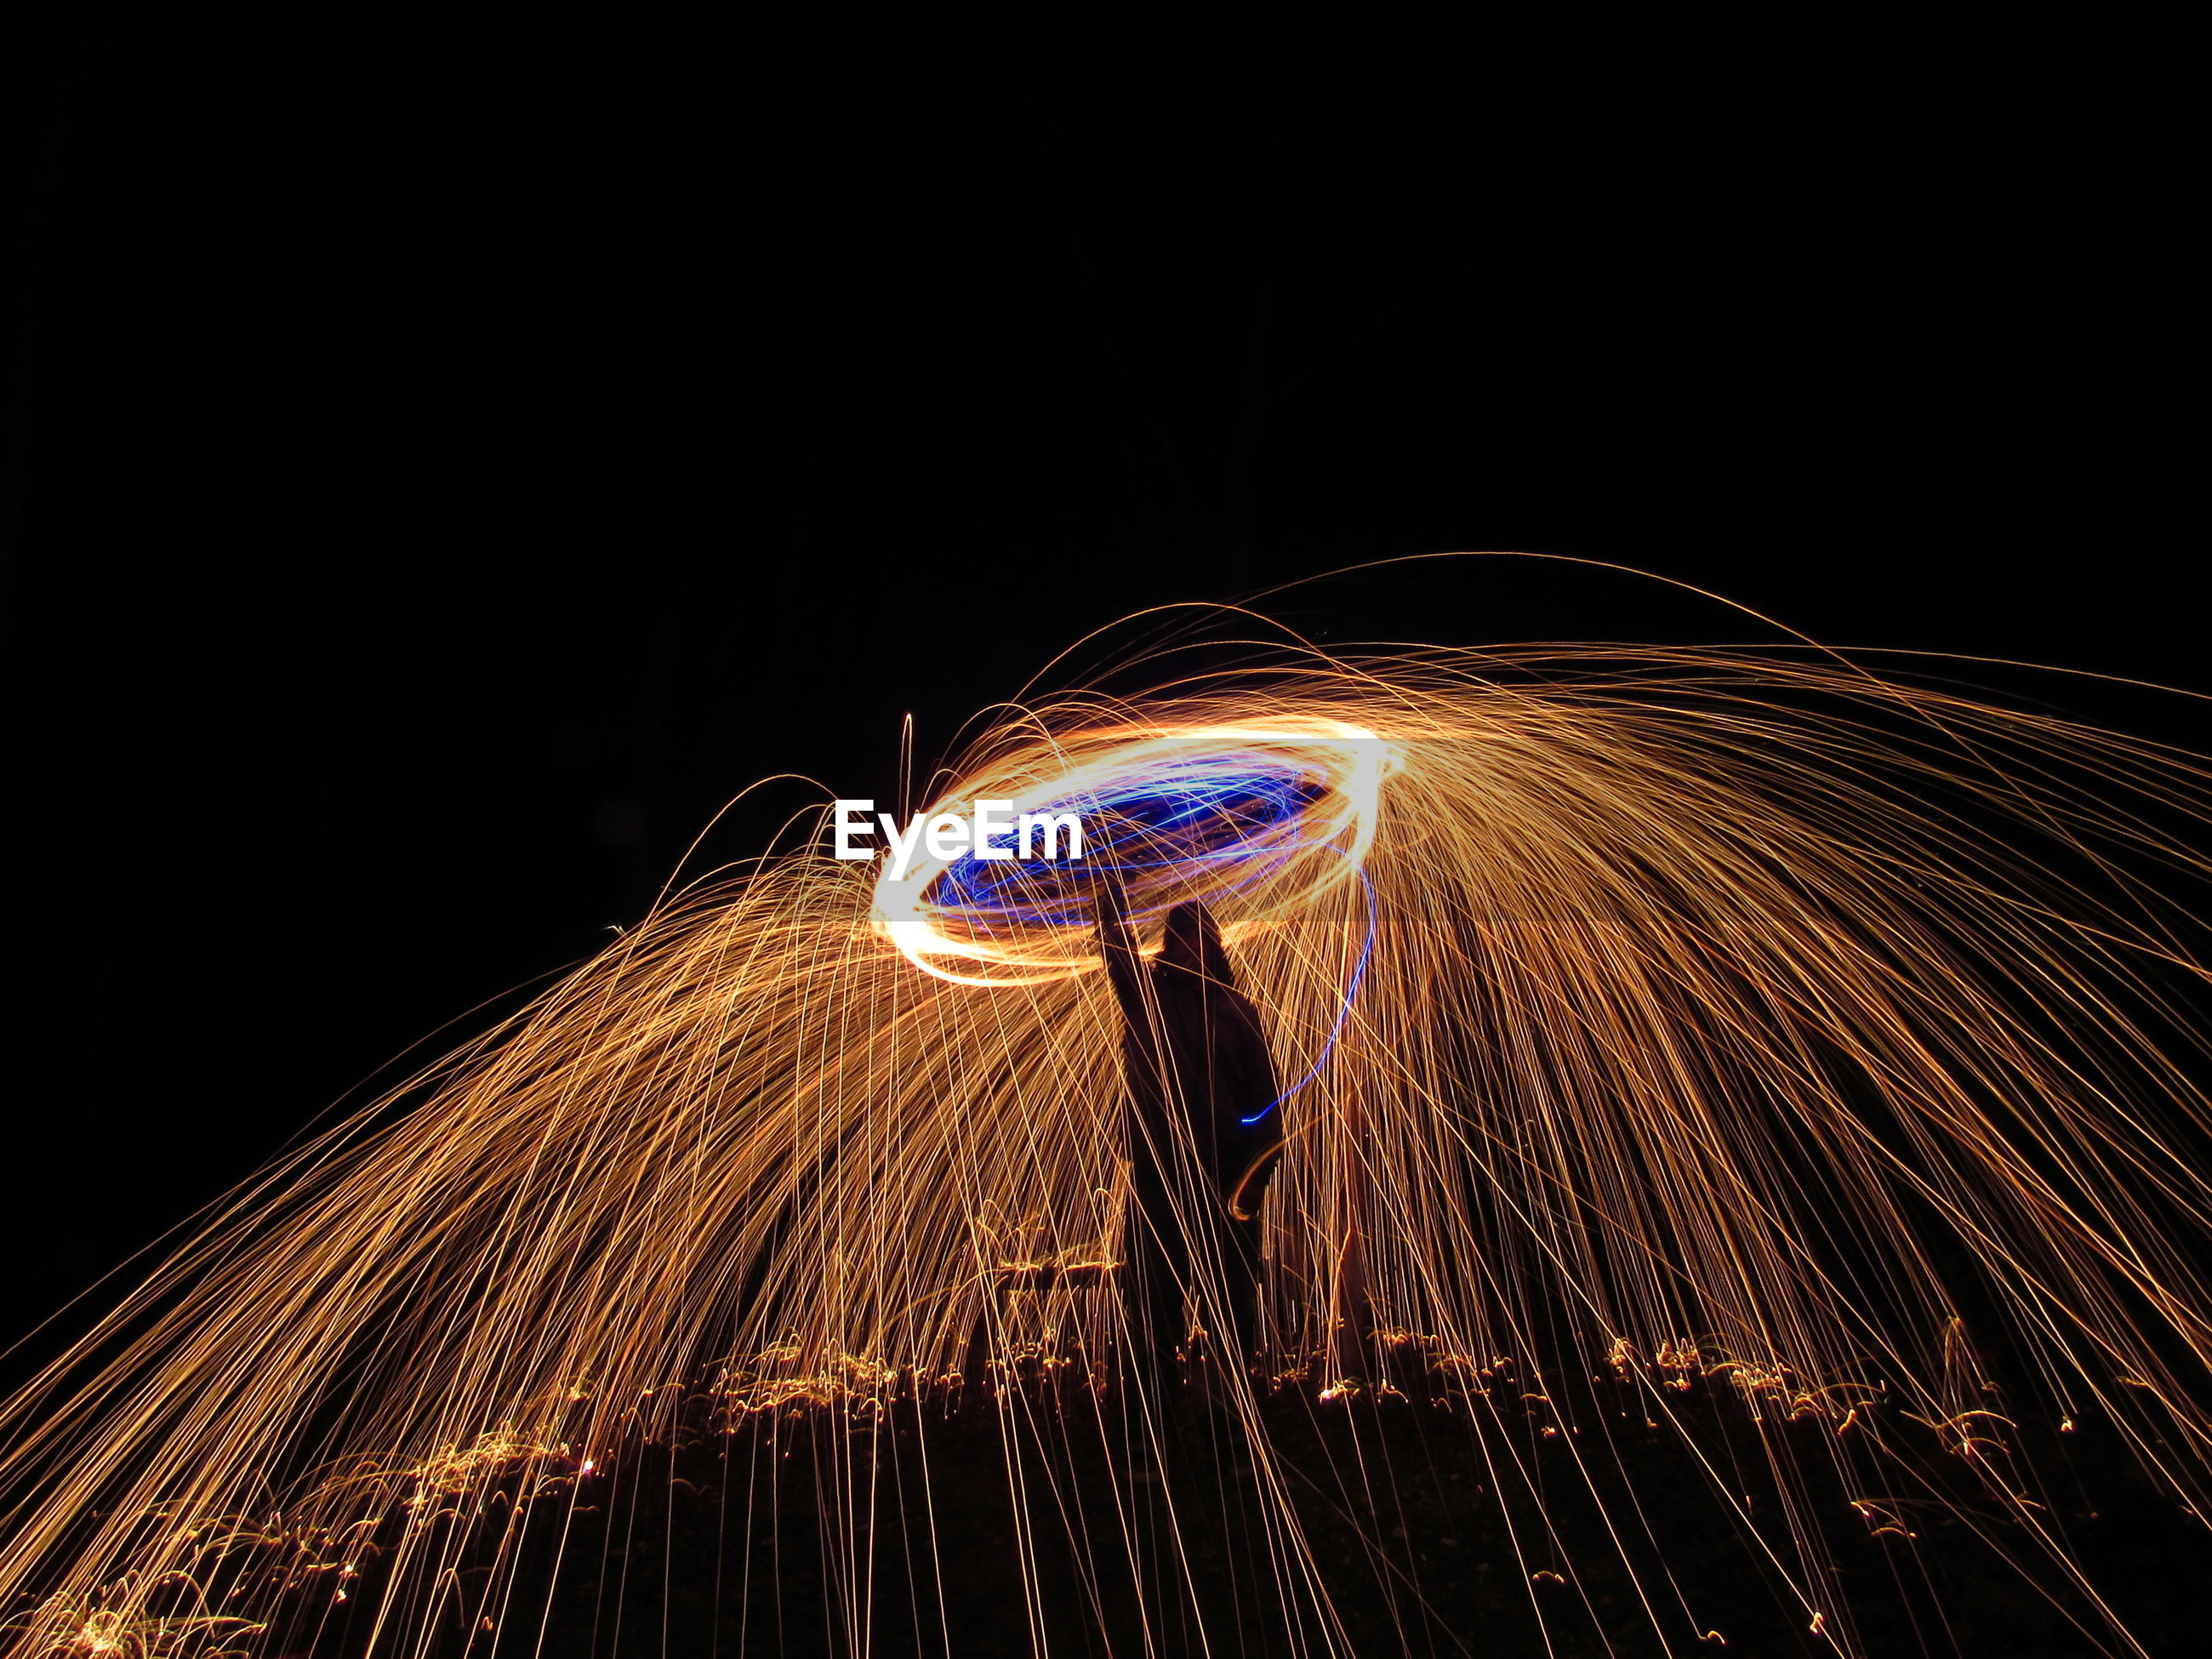 Man standing amidst wire wool at night